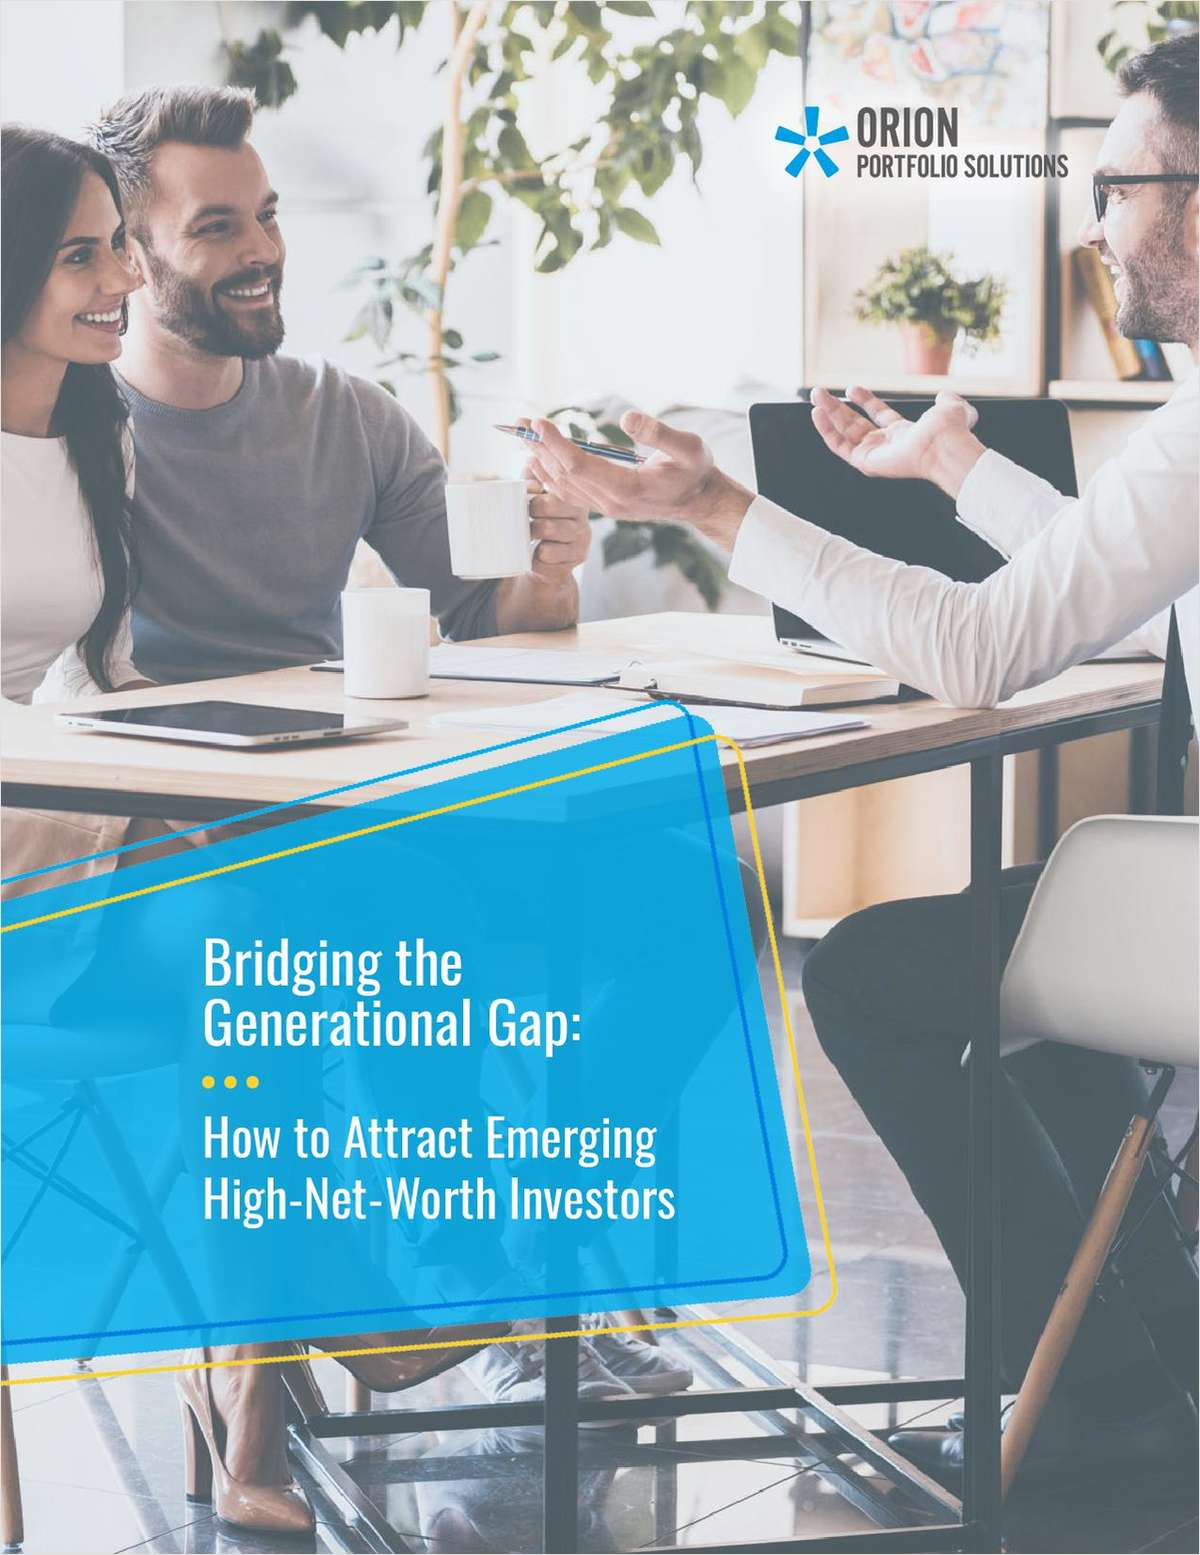 Bridging the Generational Gap: How to Attract Emerging High-Net-Worth Investors